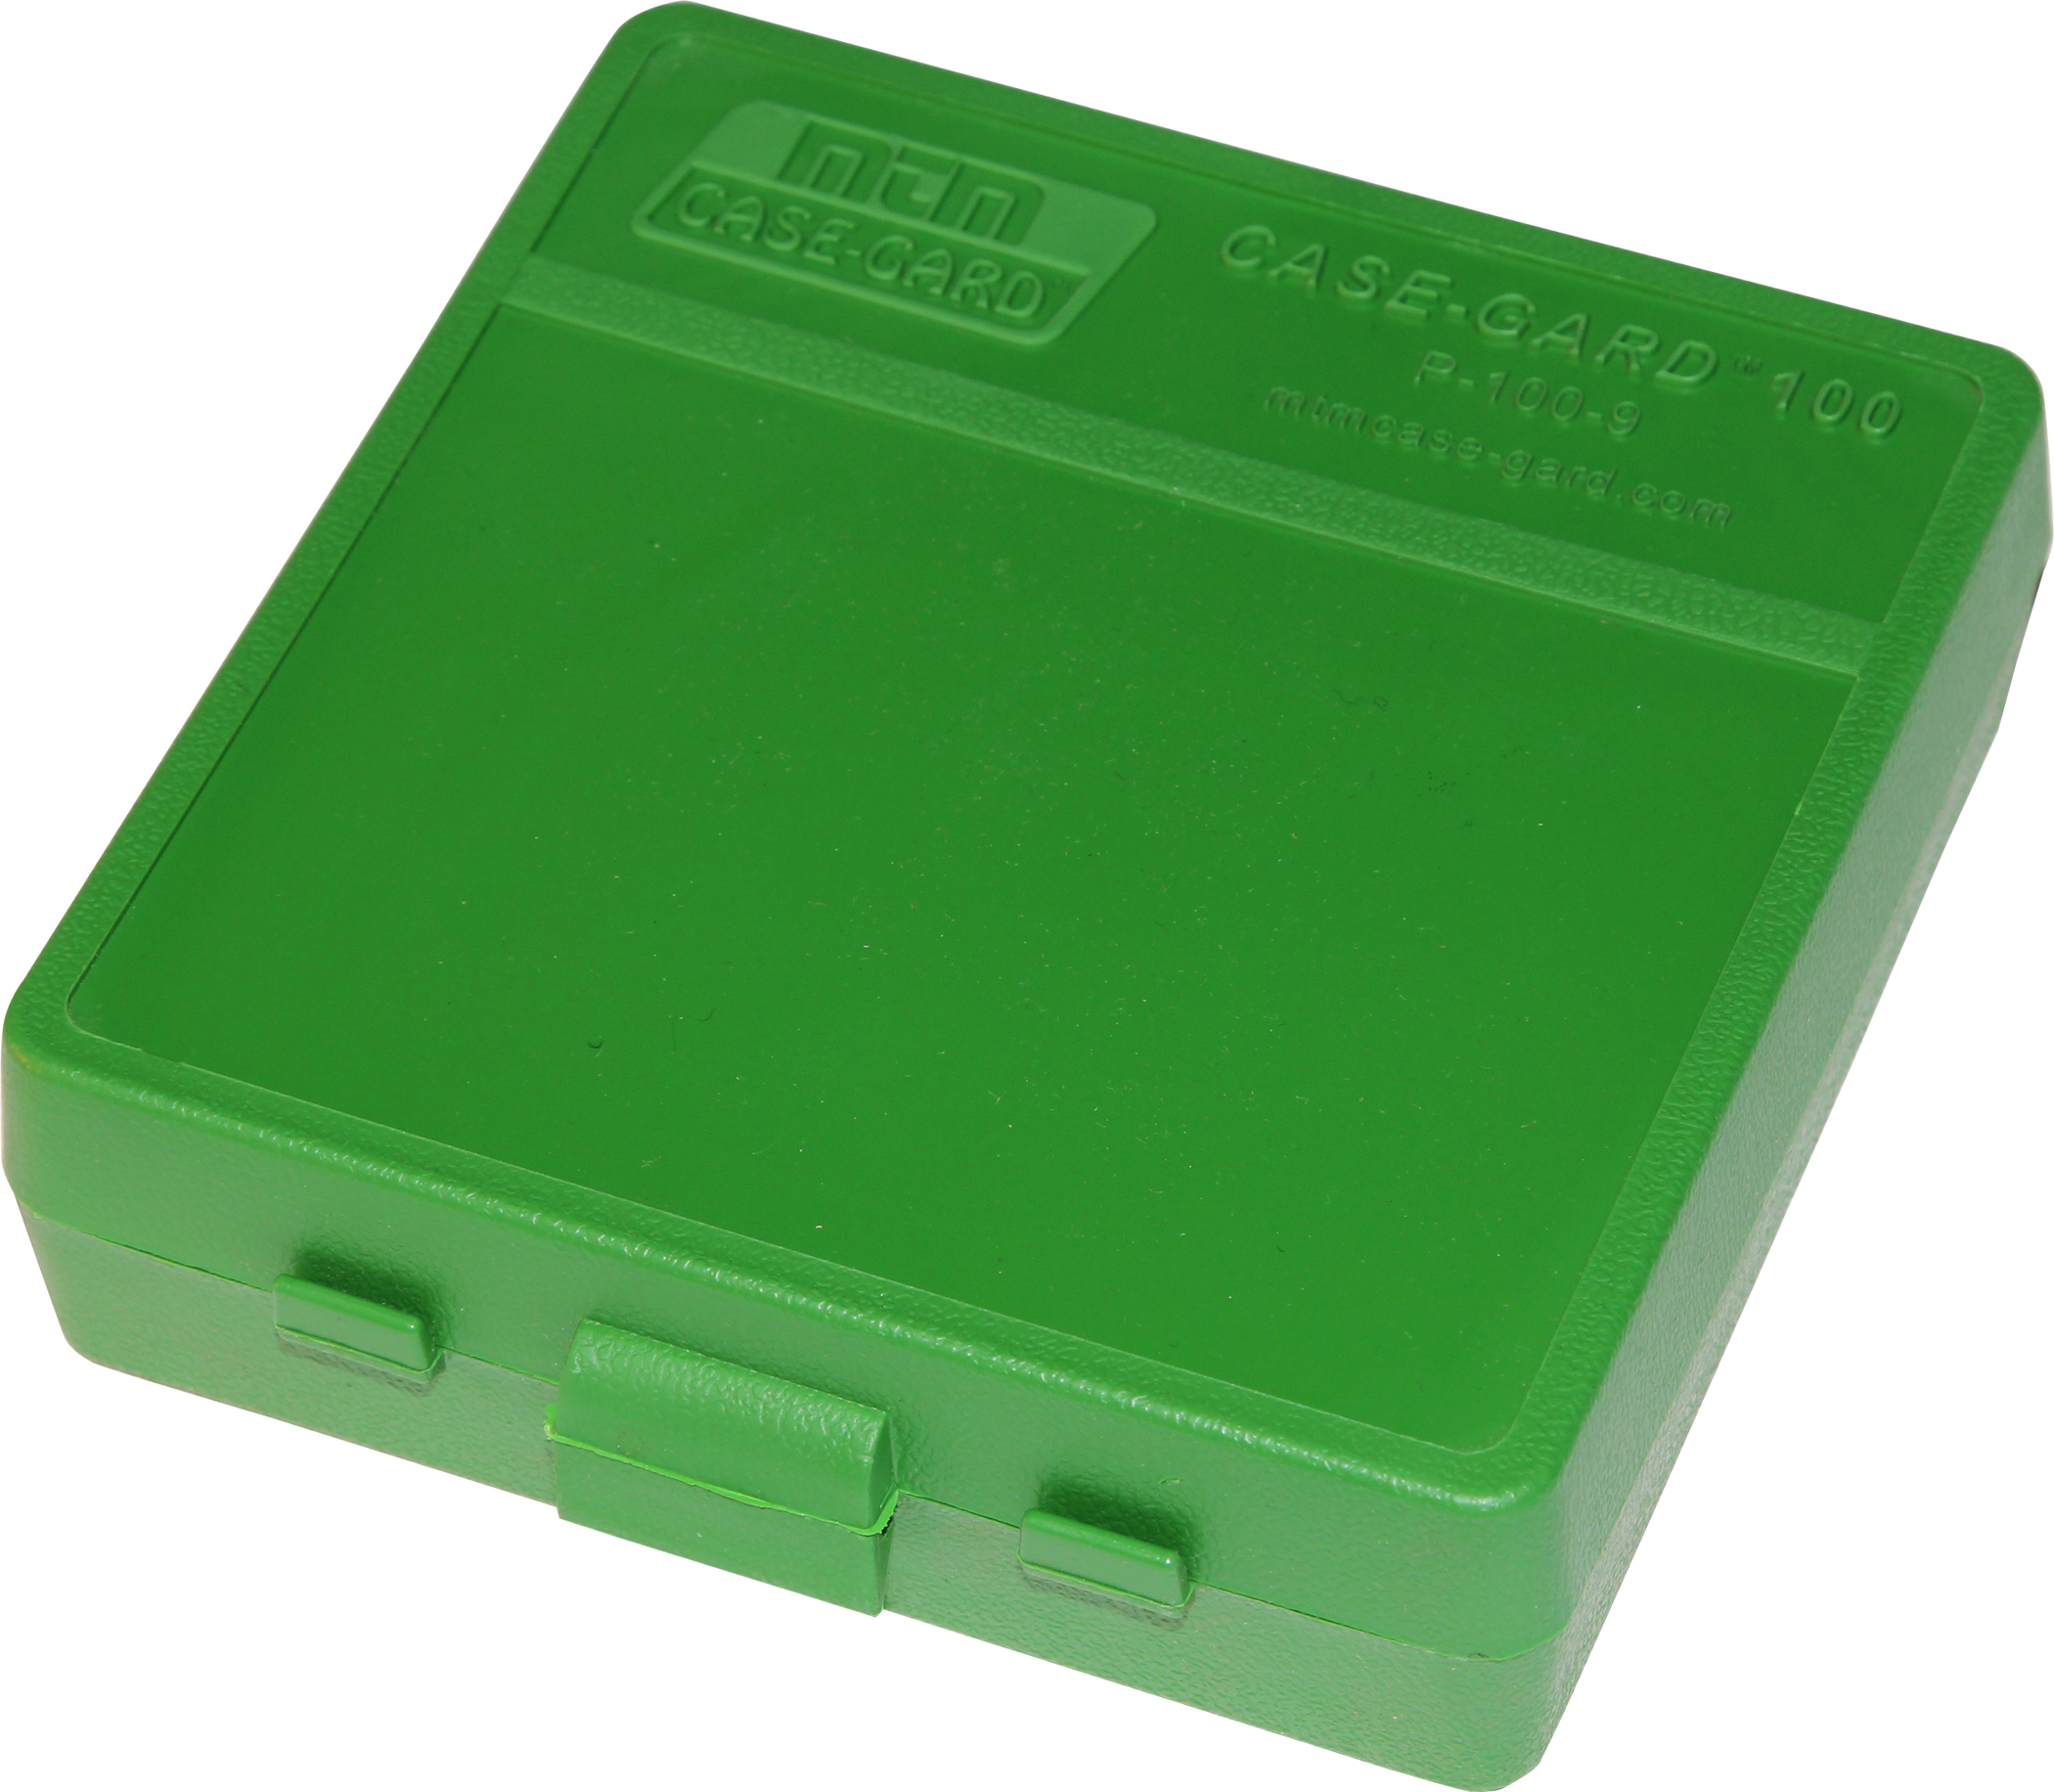 10 MTM PLASTIC AMMO BOXES FREE SHIPPING GREEN 100 Round 9mm // 380